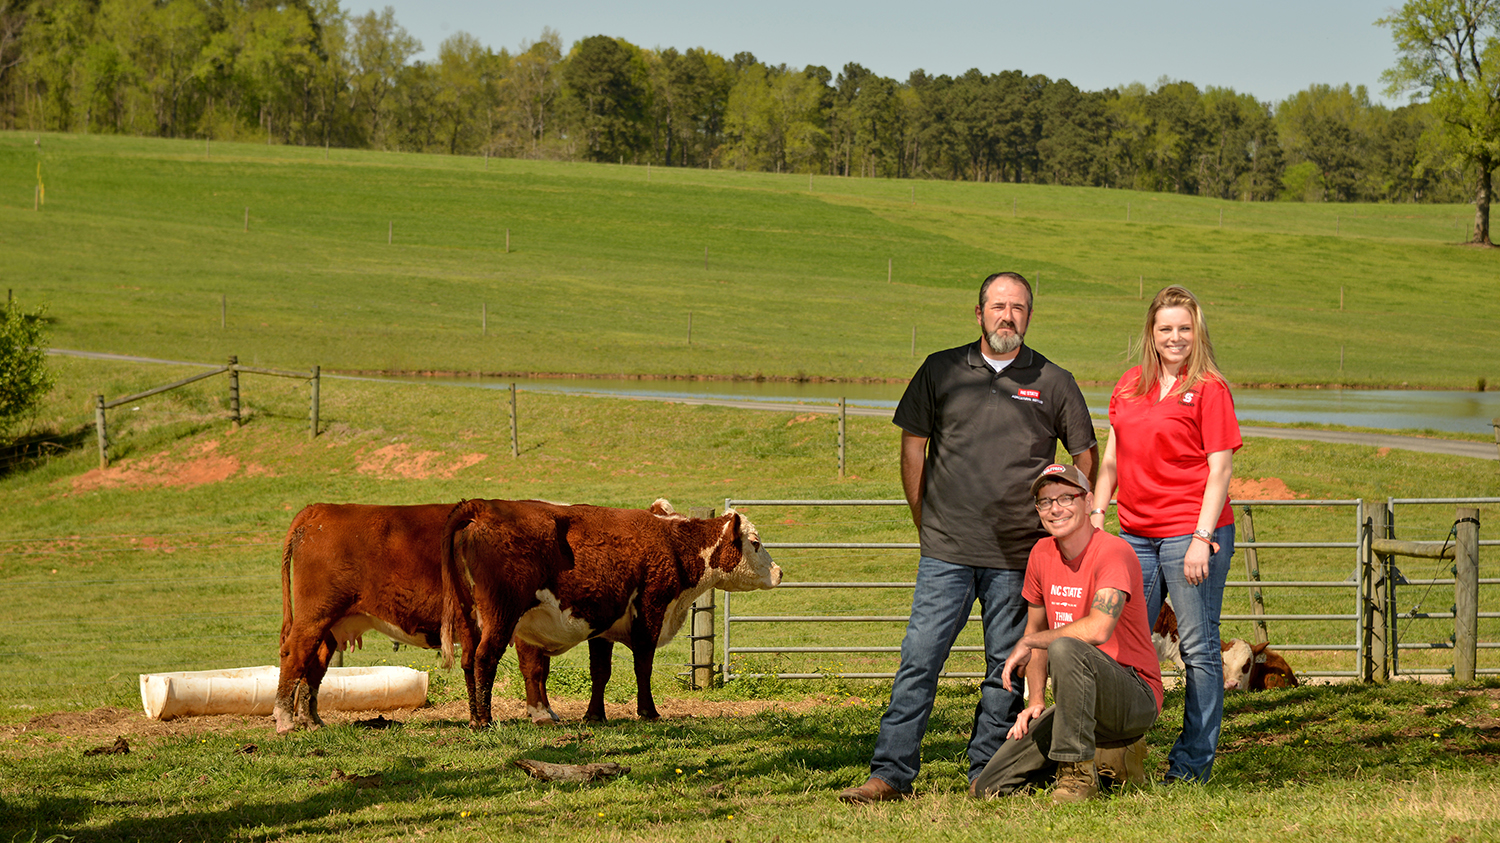 Three military veterans in a farm field with two cows